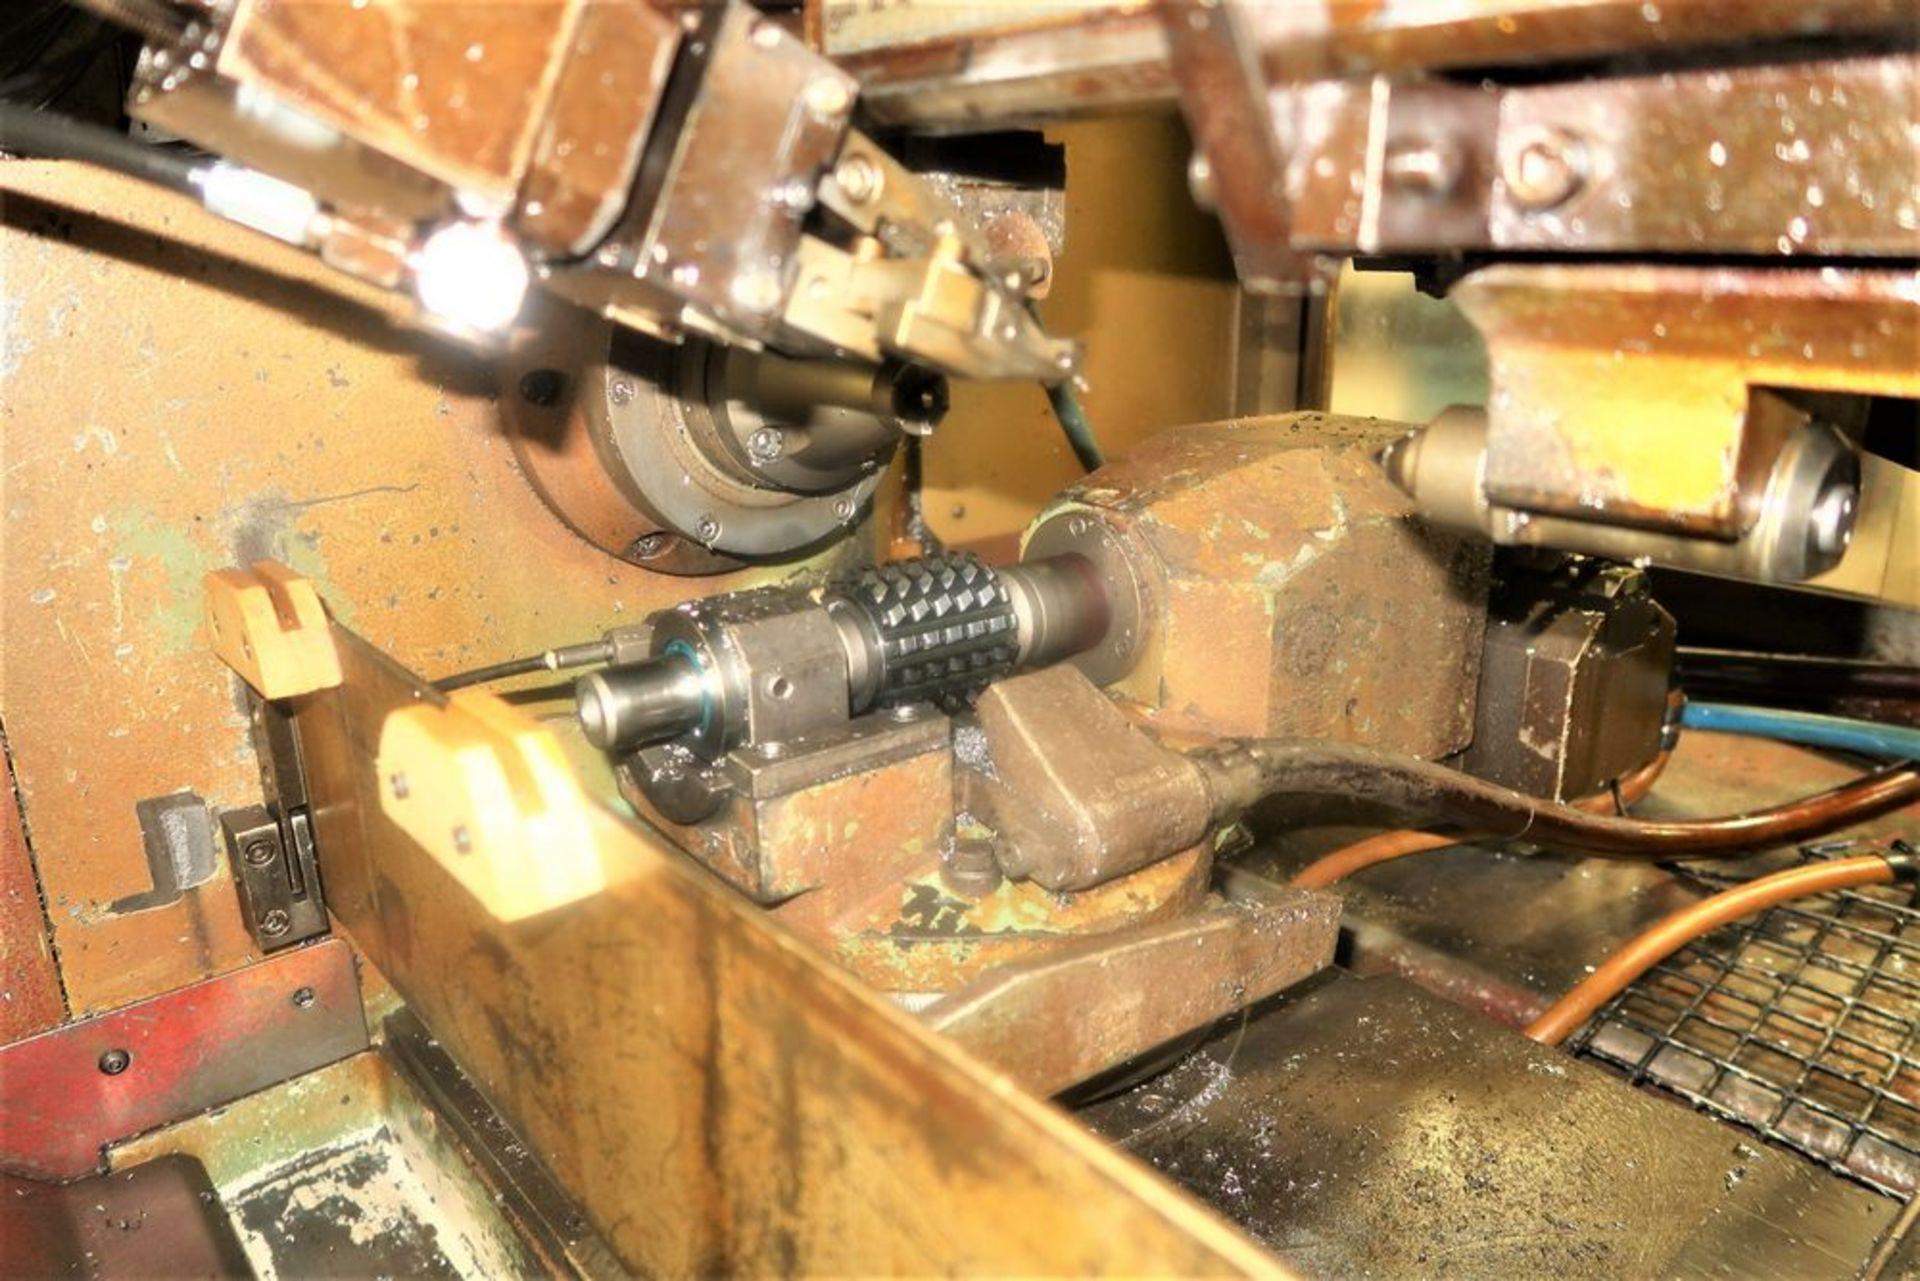 Koepfer 153B Gear Hobber w/Automatic Loading, S/N 153187 - Image 3 of 8